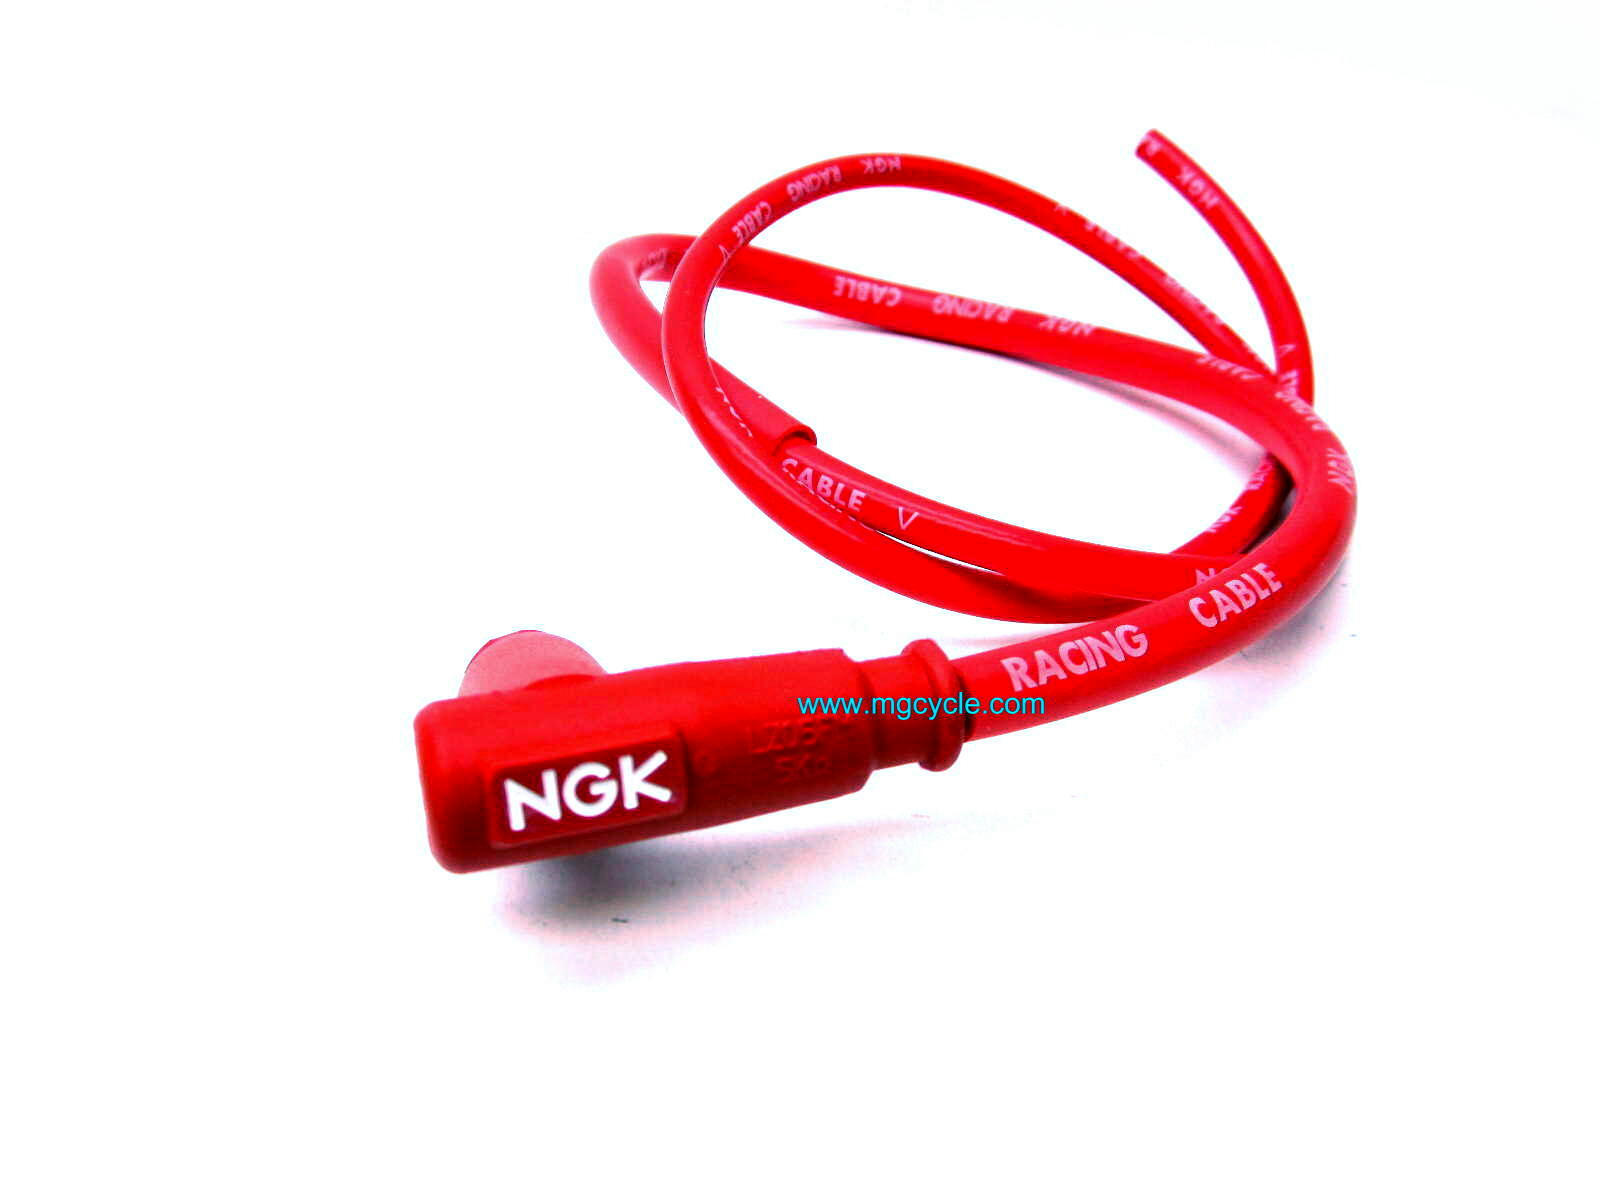 Red NGK plug wire (100cm) 90 degree 5k ohm resistor cap